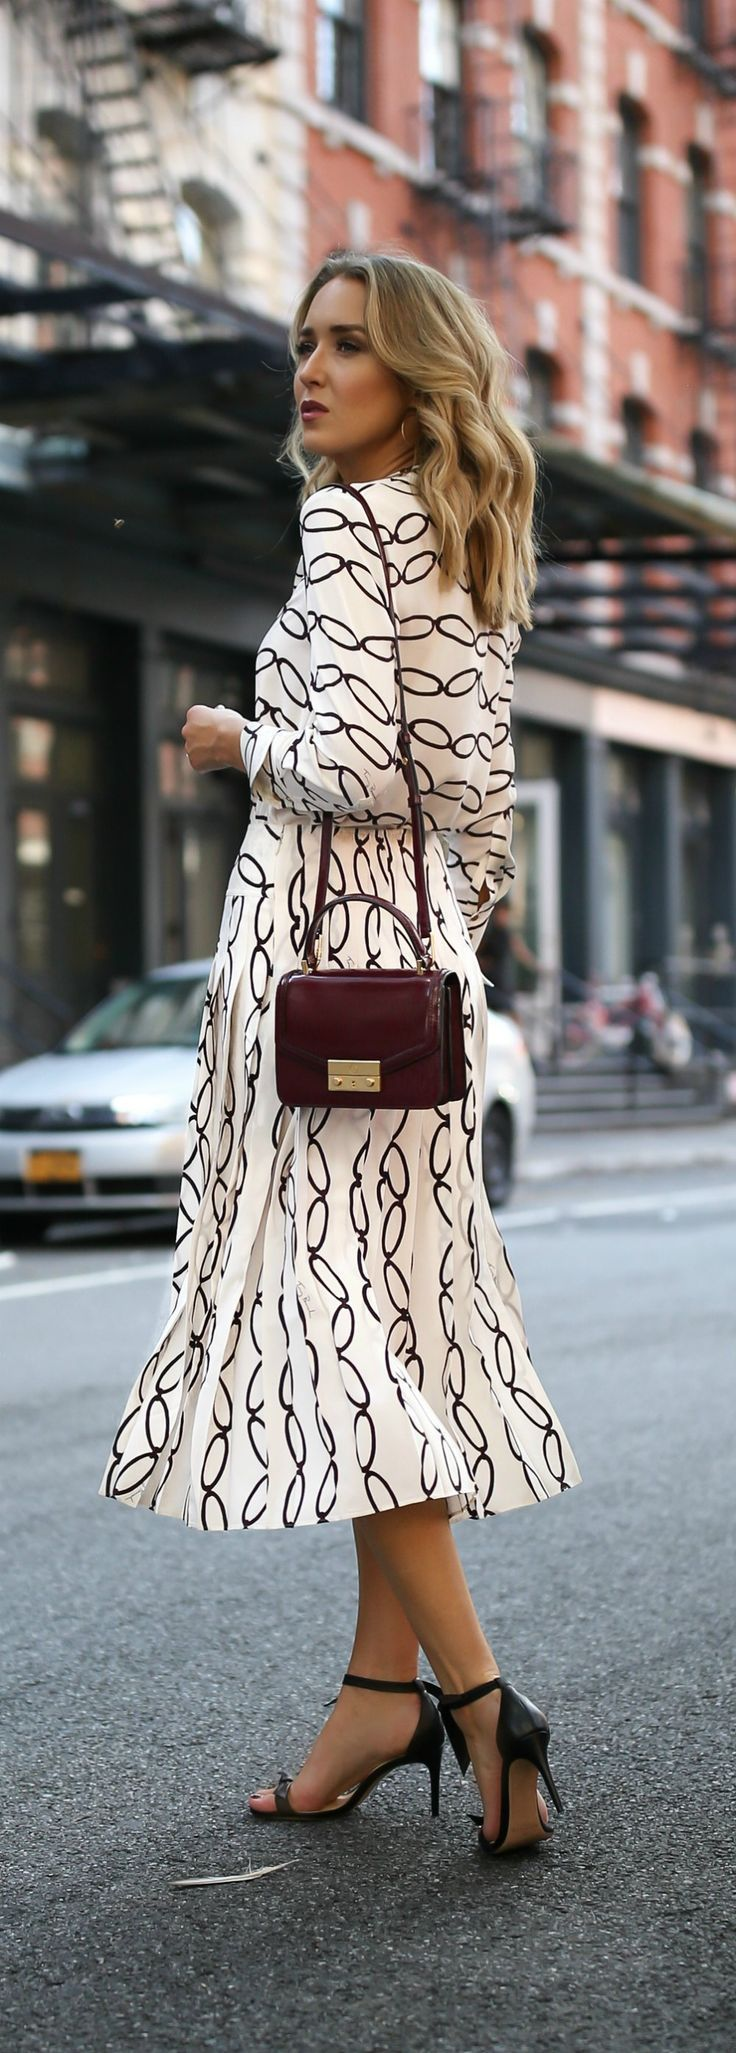 Transitional Favorites // Patterned blouse, pleated midi skirt, black ankle strap sandals, burgundy handbag {Tory Burch, Alexandre Birman, workwear, creative office style}